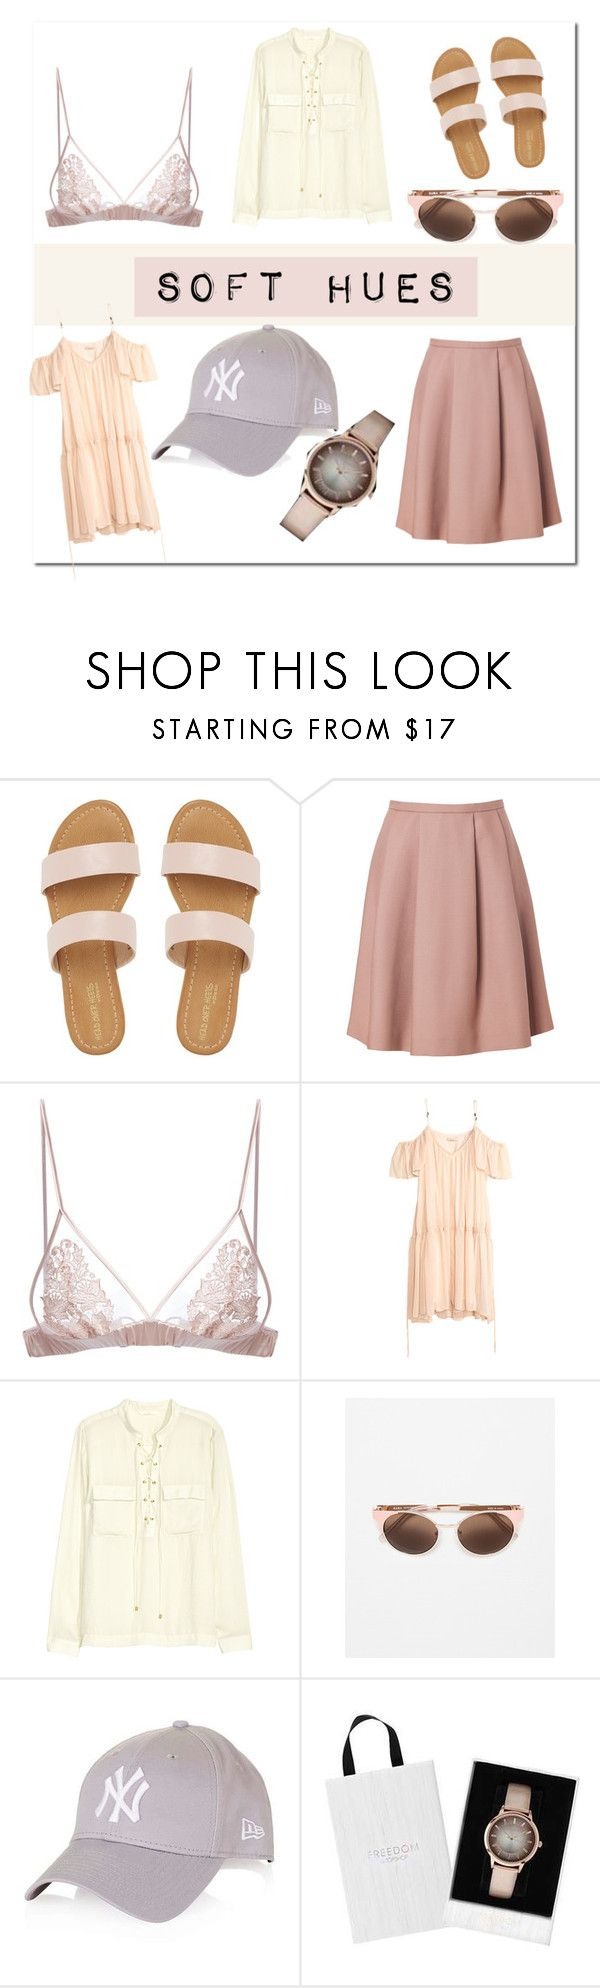 """""""Soft Hues // Blog Post"""" by simply-ashley ❤ liked on Polyvore featuring Tara Jarmon, Fleur of England, H&M and Zara"""